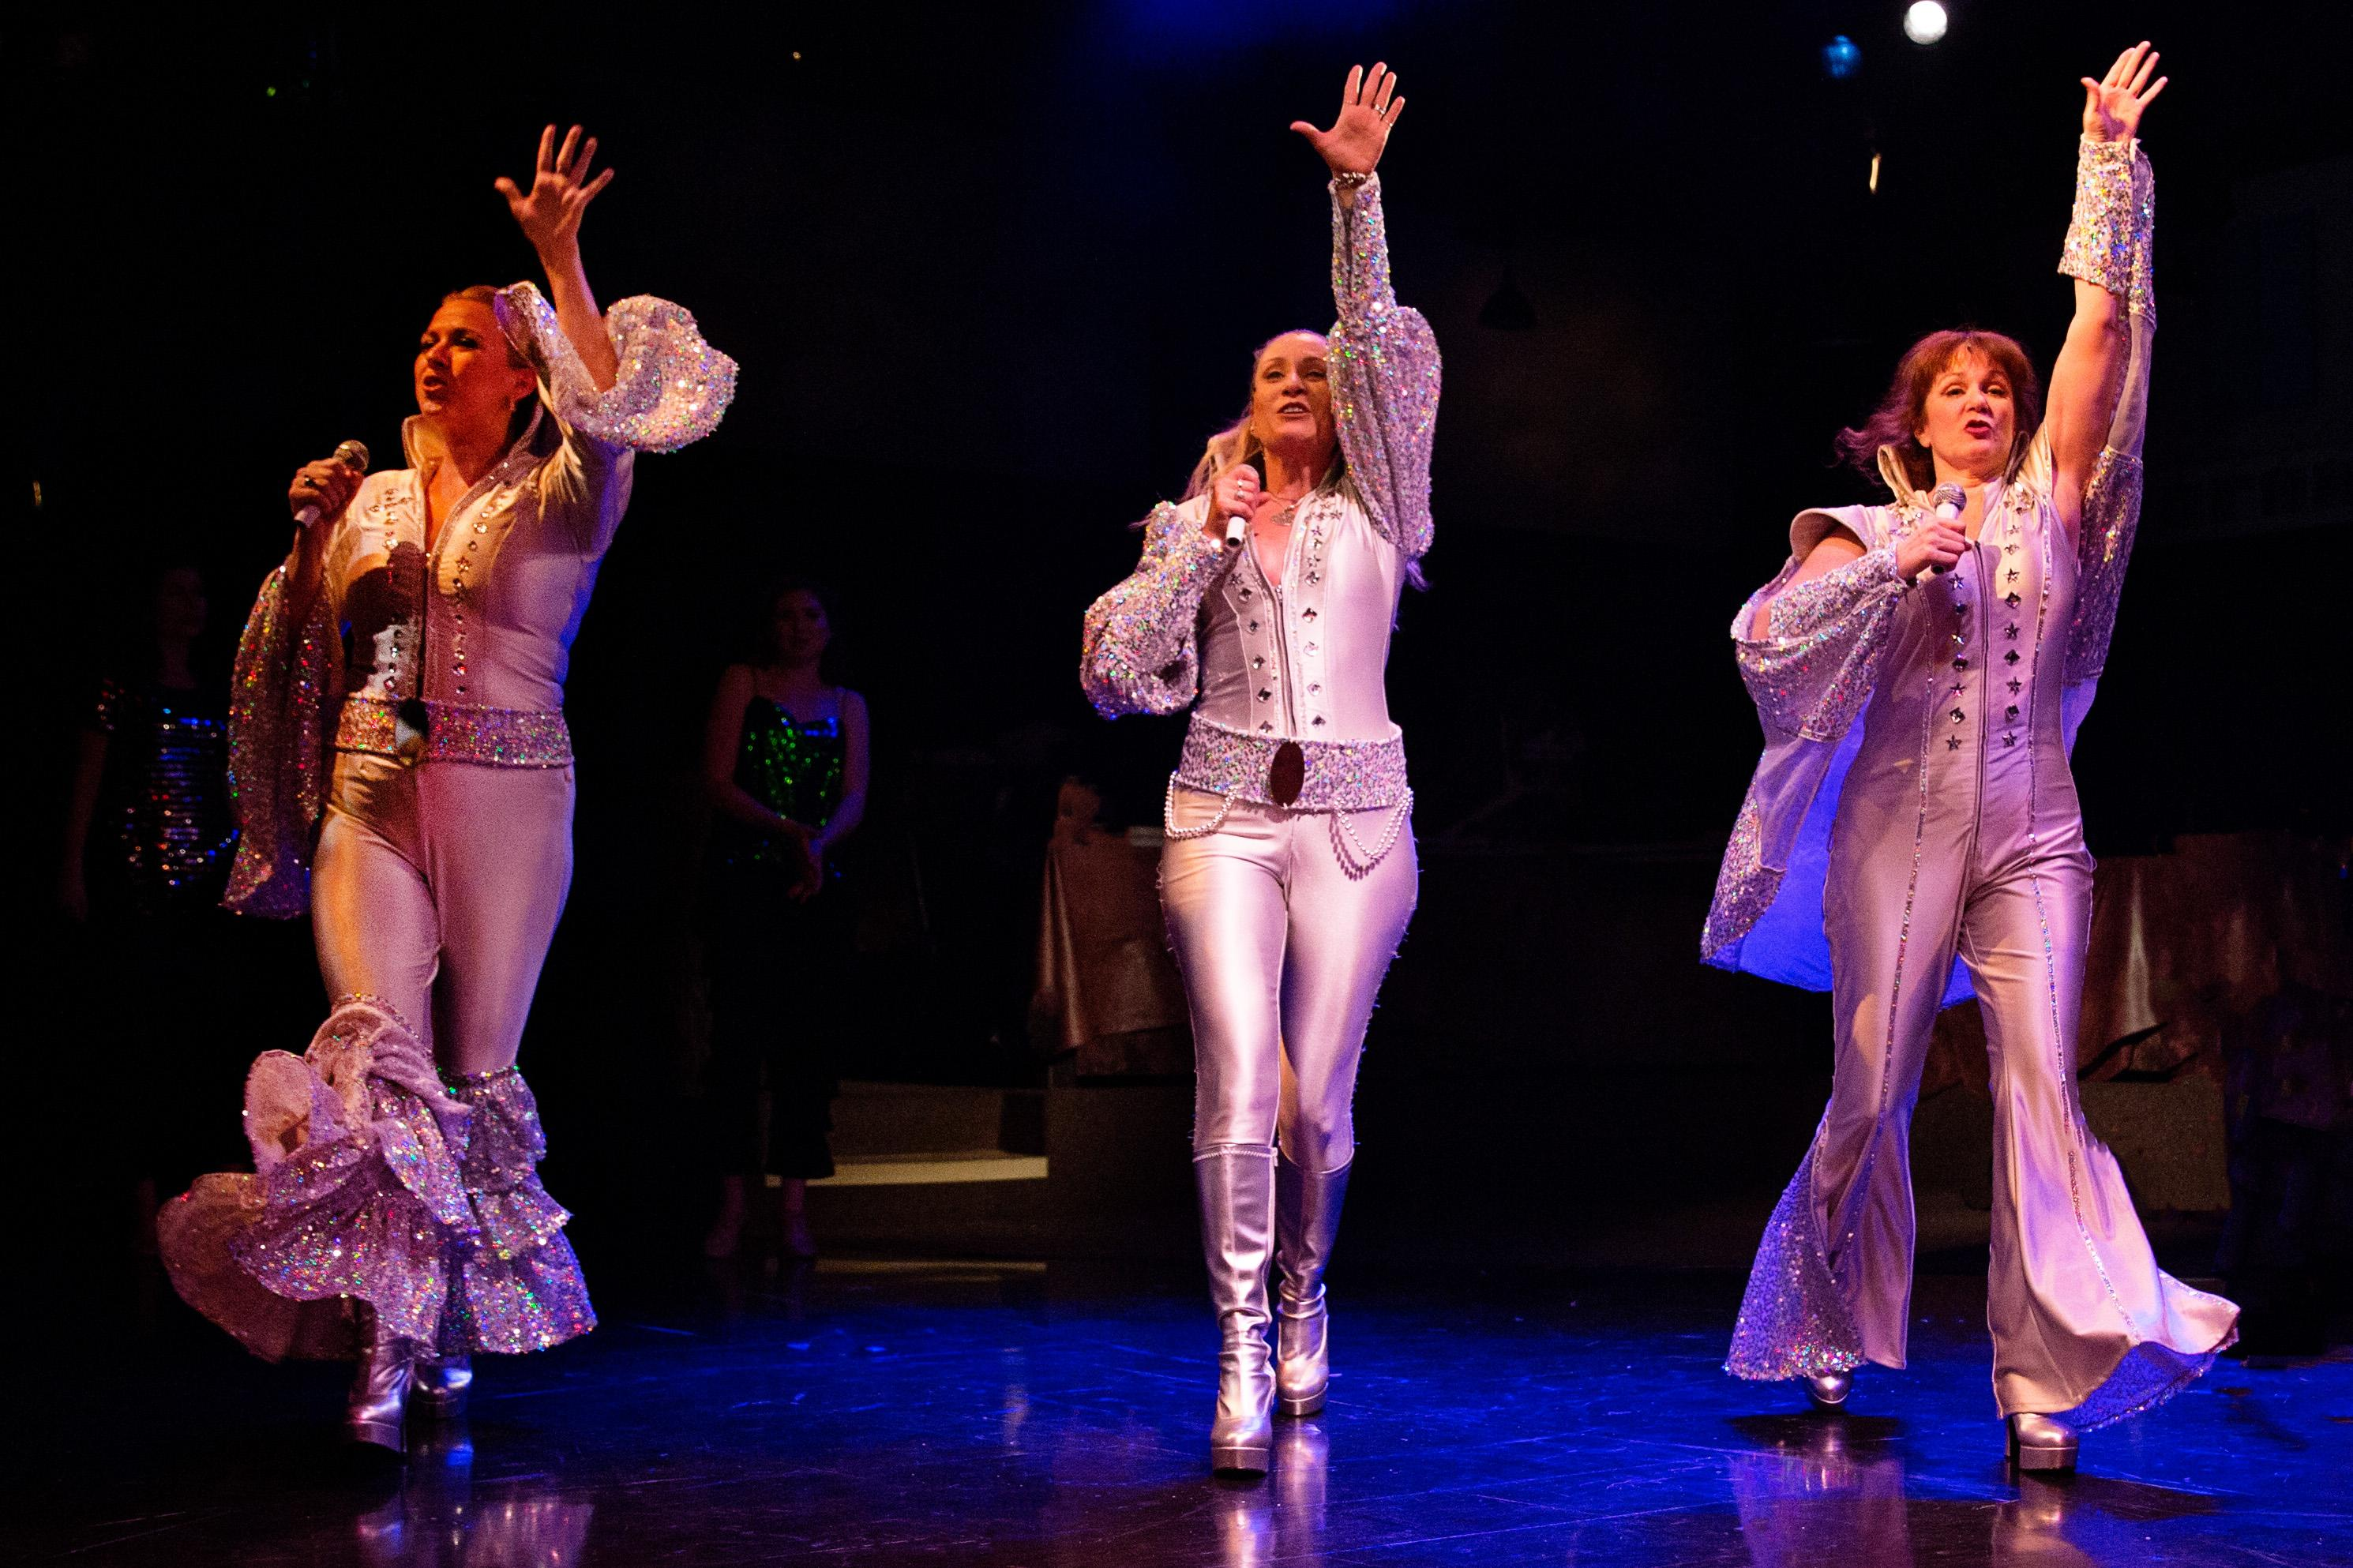 Coby Kay Callahan, Heather Marie Beck and Tess Rohan in MAMMA MIA! at Toby's Dinner Theatre.{ }(Image: Jeri Tidwell)